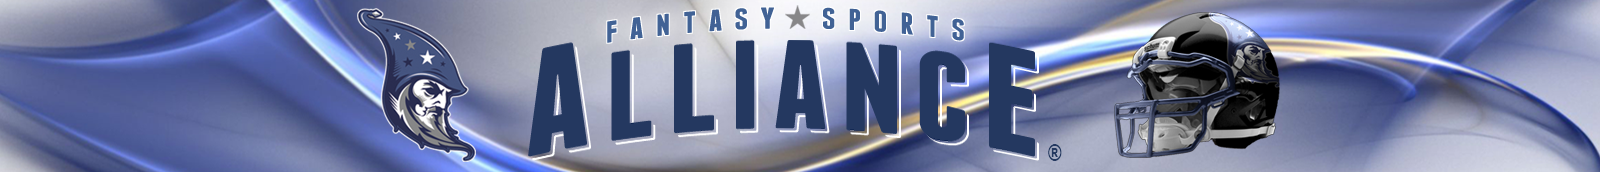 Fantasy Sports Alliance